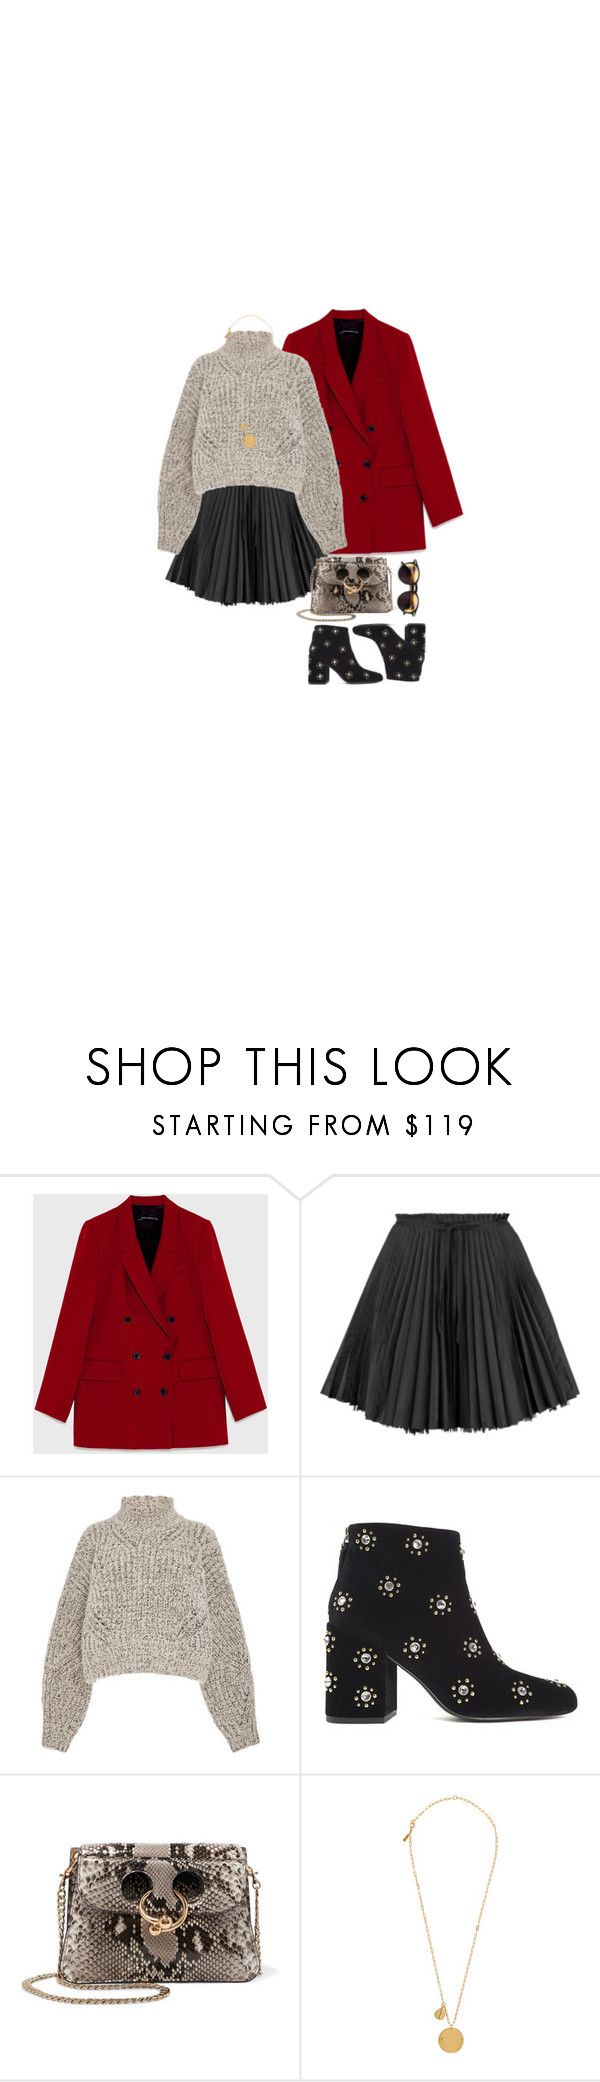 """""""simple#23"""" by frutini ❤ liked on Polyvore featuring RED Valentino, Isabel Marant, Senso, J.W. Anderson, Wildfox and Elizabeth and James"""